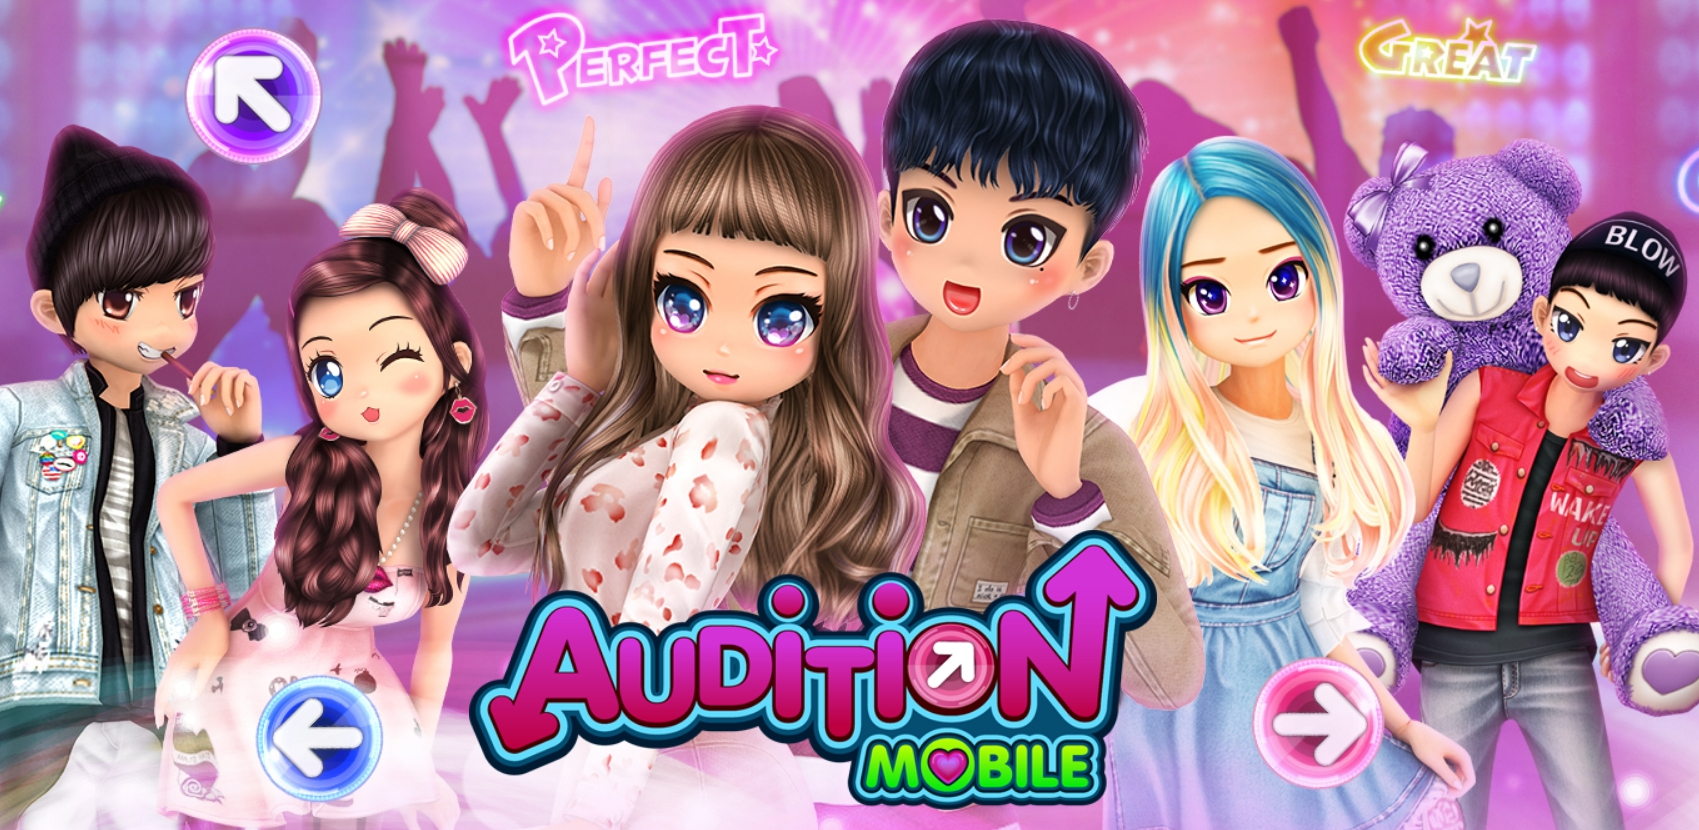 Audition Mobile Update patch Aug 2019